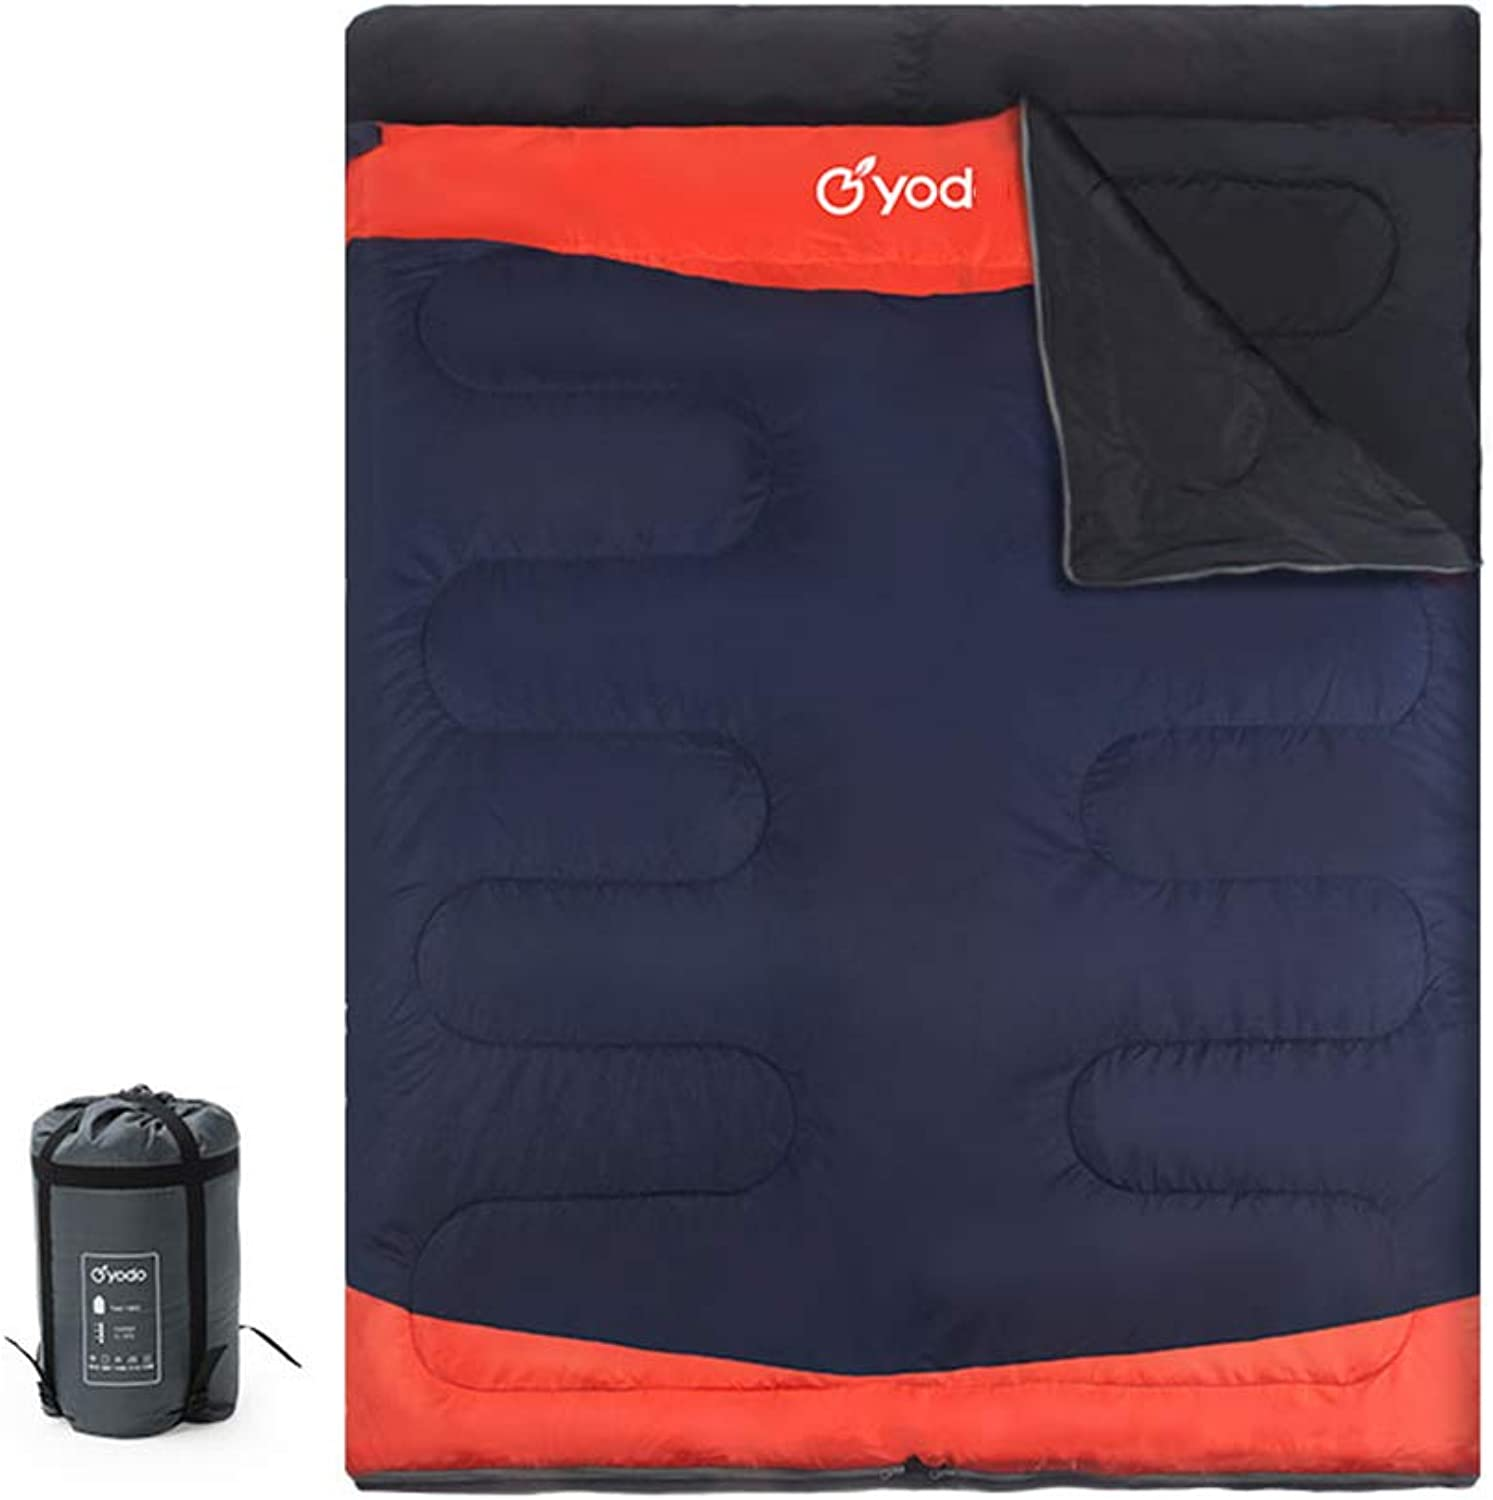 ZWY Durable,Breathable,comfortableDoppelschlaftasche, Umschlag und Outdoor Leichtgewicht Sleeping Pad 4 4 4 Season Warm Cool Weather Sleep Sack Portable Adults Traveling, Wandern Camping B07P25P6X4  Abgabepreis 0bf256